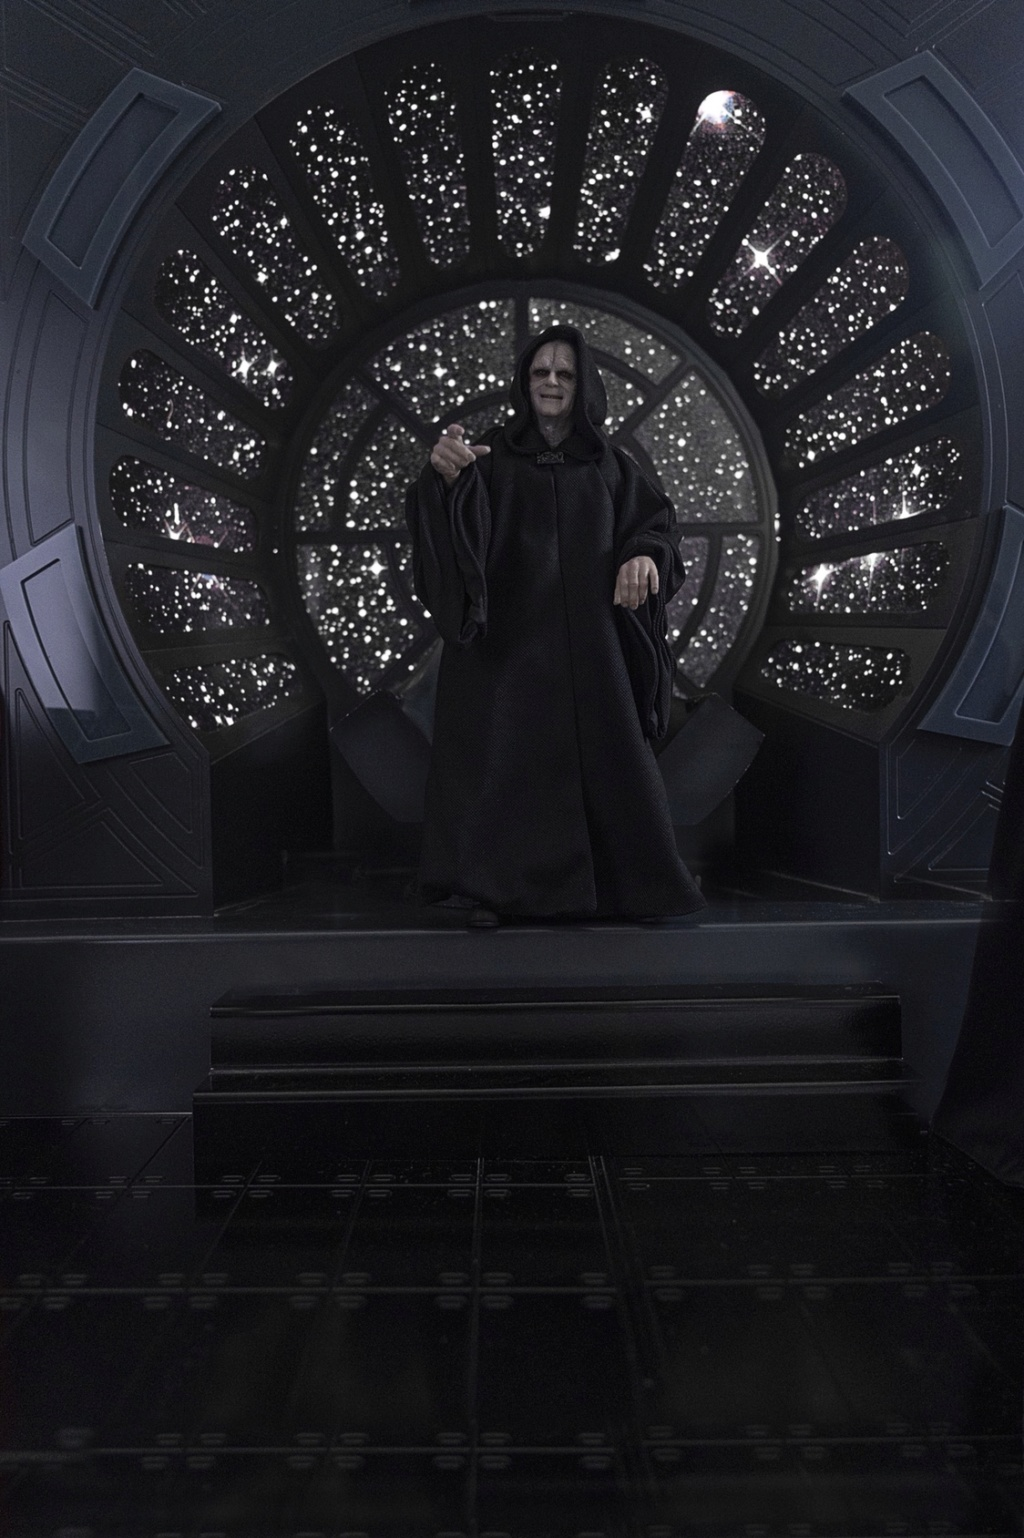 rotj - Hot Toys Star Wars Emperor Palpatine (Deluxe) Review - Page 2 3163